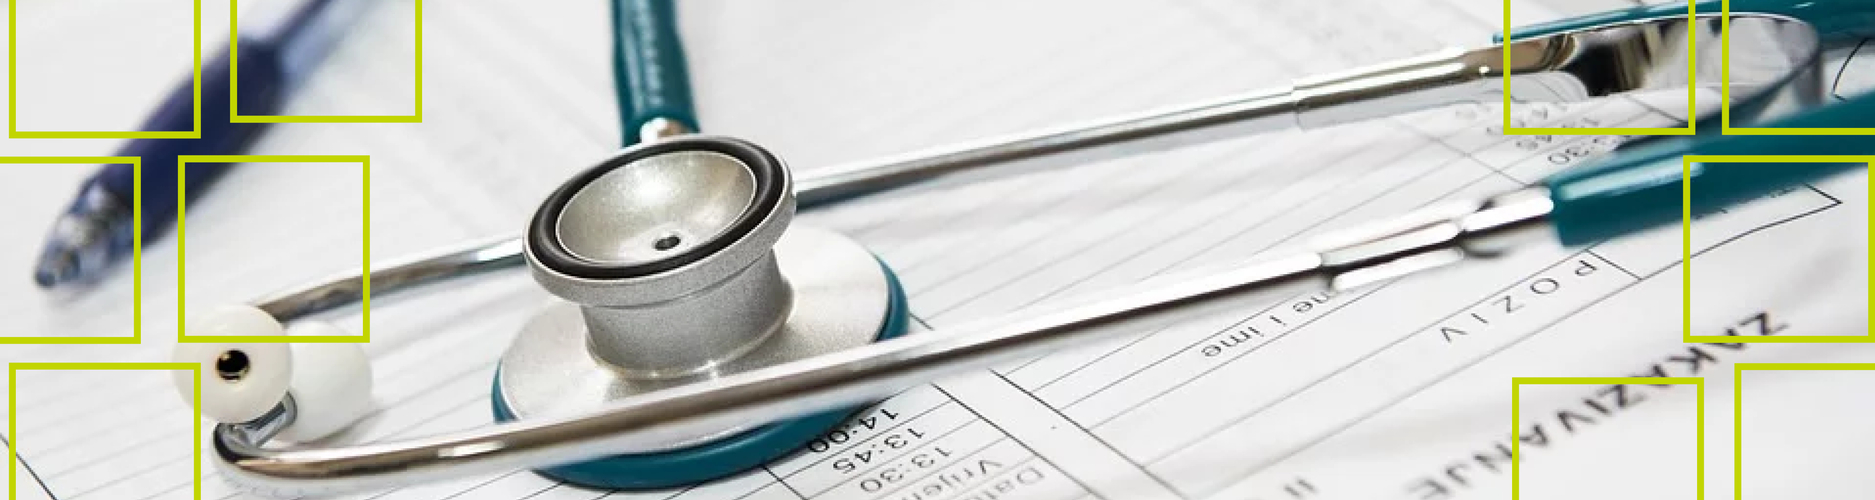 WP-The Benefits to Scanning Medical Records-Banner